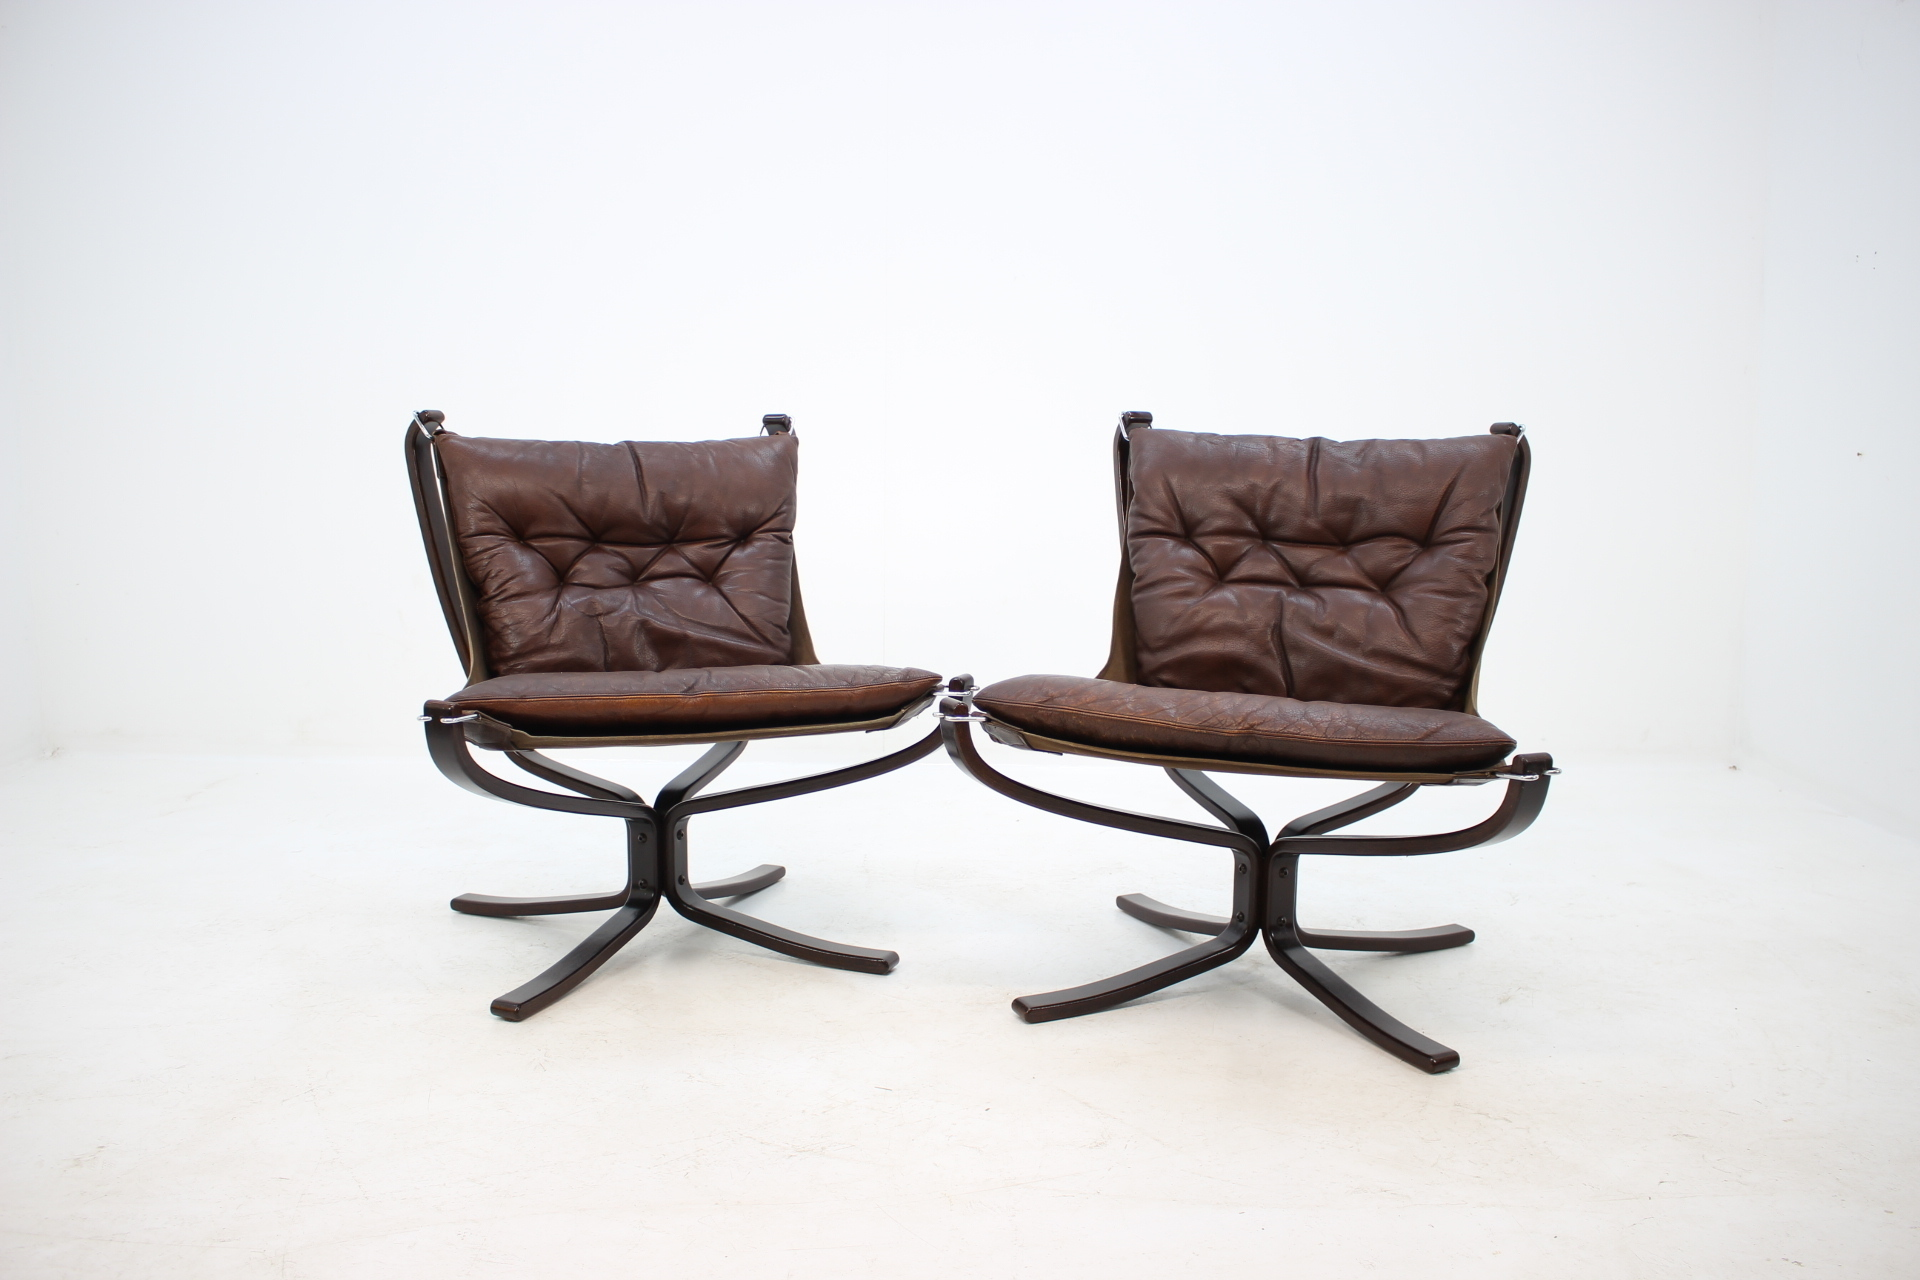 Falcon Chair 1970s Falcon Chair By Sigurd Ressell For Vatne Møbler Set Of 2 Sigurd Russell Vatne MØbler Vinterior Co